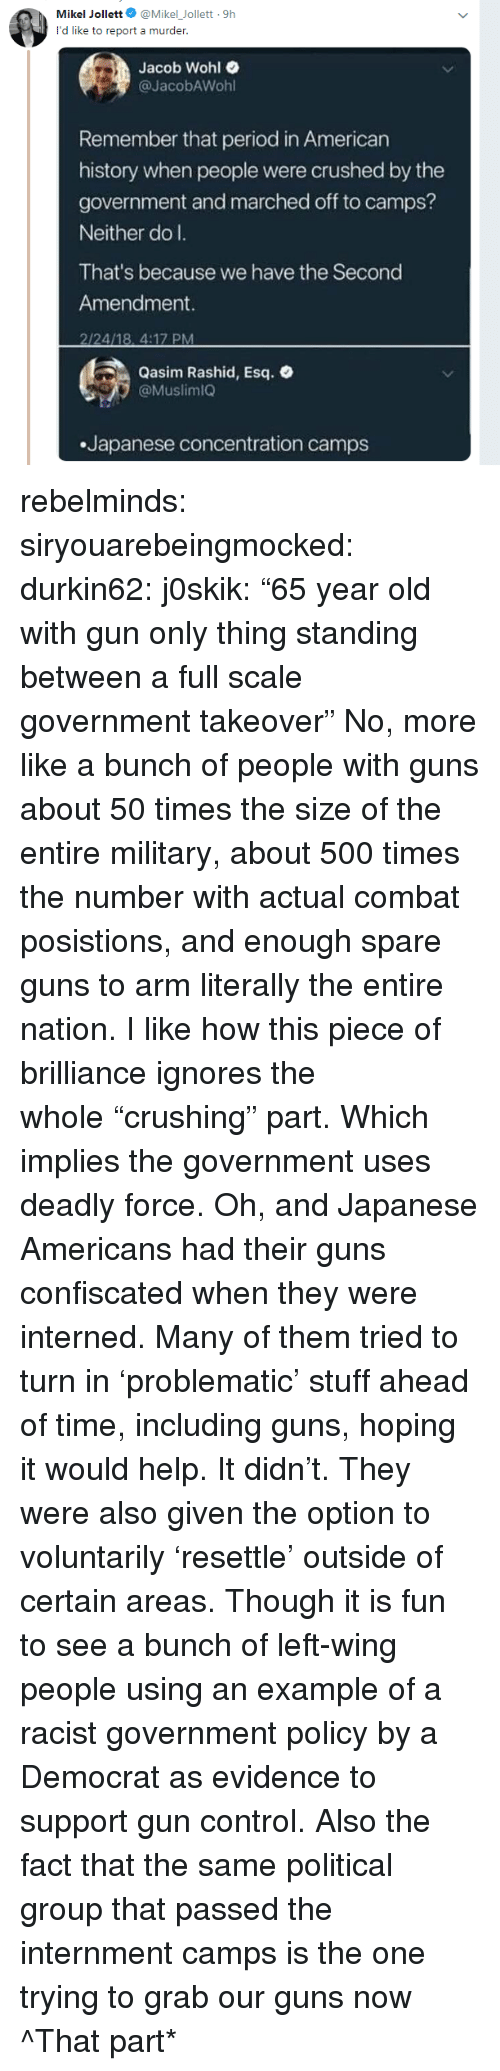 "Guns, Period, and Tumblr: Mikel Jollett@Mikel_Jollett 9h  Jacob Wohl e  @JacobAWohl  Remember that period in American  history when people were crushed by the  government and marched off to camps?  Neither do l.  That's because we have the Second  Amendment.  2/24/18, 4:17 PM  Qasim Rashid, Esq.  @MuslimiQ  Japanese concentration camps rebelminds: siryouarebeingmocked:   durkin62:  j0skik:  ""65 year old with gun only thing standing between a full scale government takeover""  No, more like a bunch of people with guns about 50 times the size of the entire military, about 500 times the number with actual combat posistions, and enough spare guns to arm literally the entire nation.   I like how this piece of brilliance ignores the whole ""crushing"" part. Which implies the government uses deadly force. Oh, and Japanese Americans had their guns confiscated when they were interned. Many of them tried to turn in 'problematic' stuff ahead of time, including guns, hoping it would help. It didn't. They were also given the option to voluntarily 'resettle' outside of certain areas. Though it is fun to see a bunch of left-wing people using an example of a racist government policy by a Democrat as evidence to support gun control.   Also the fact that the same political group that passed the internment camps is the one trying to grab our guns now    ^That part*"